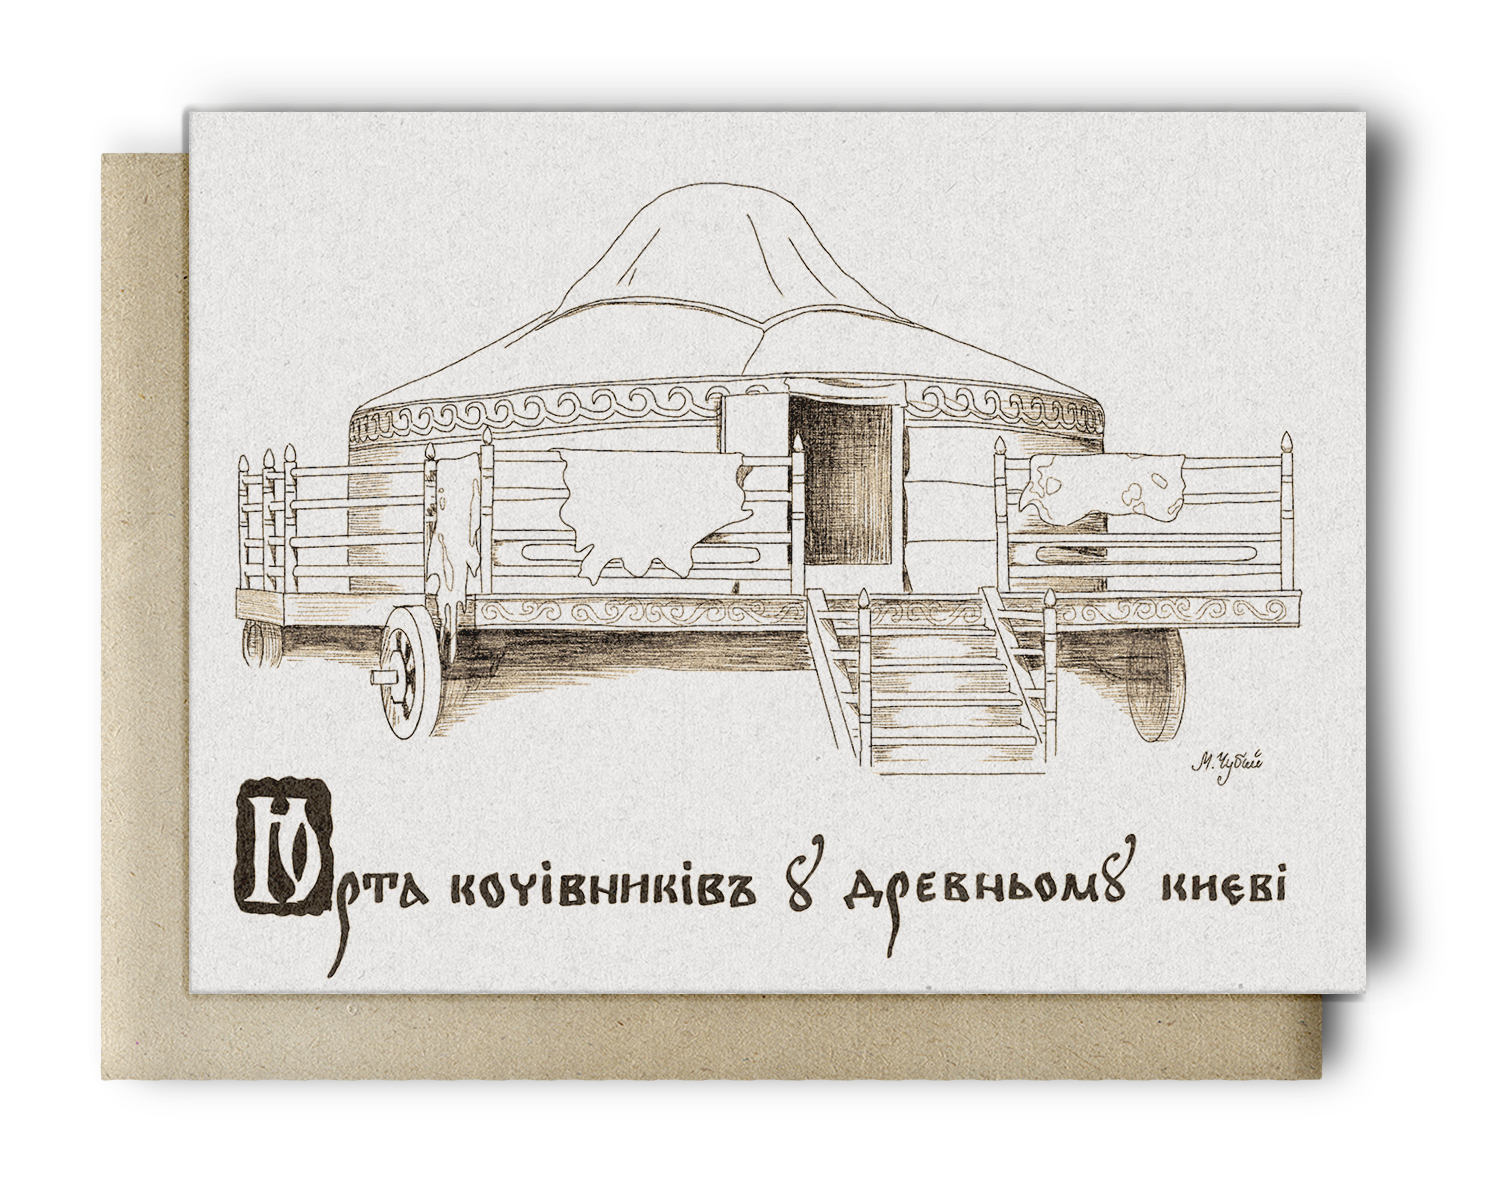 Postcard drawing unique house. You may also be